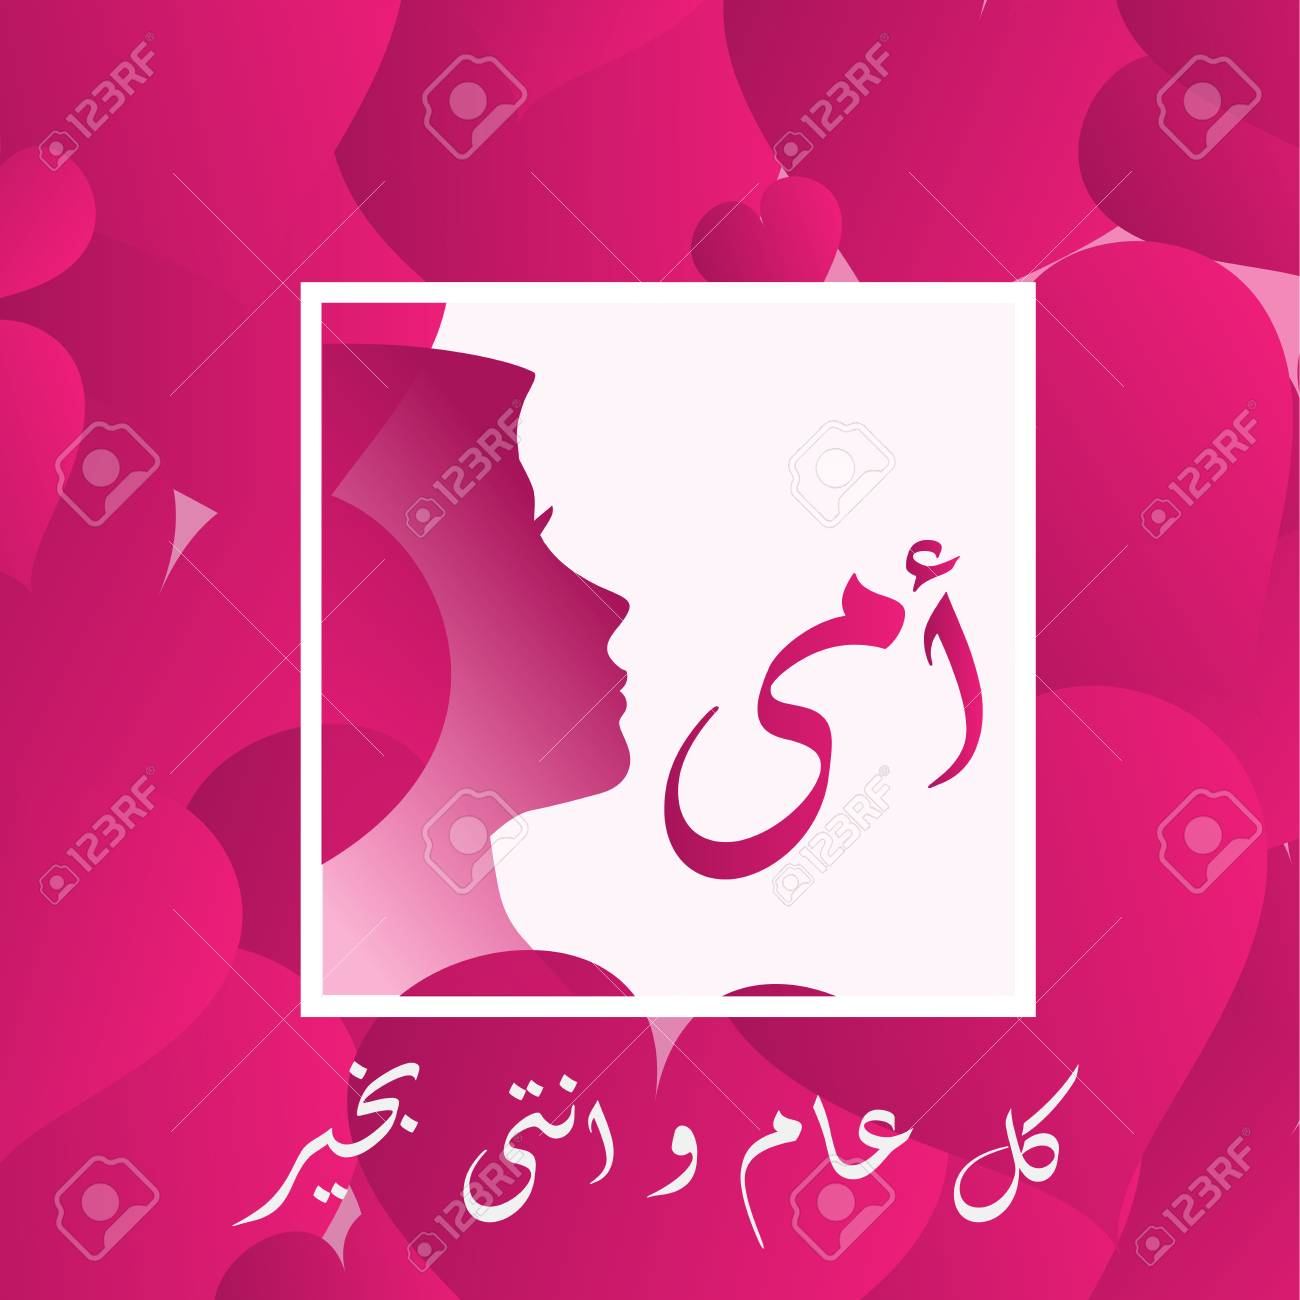 Arabic mothers day greeting card with arabic calligraphy eid arabic mothers day greeting card with arabic calligraphy eid al um translation m4hsunfo